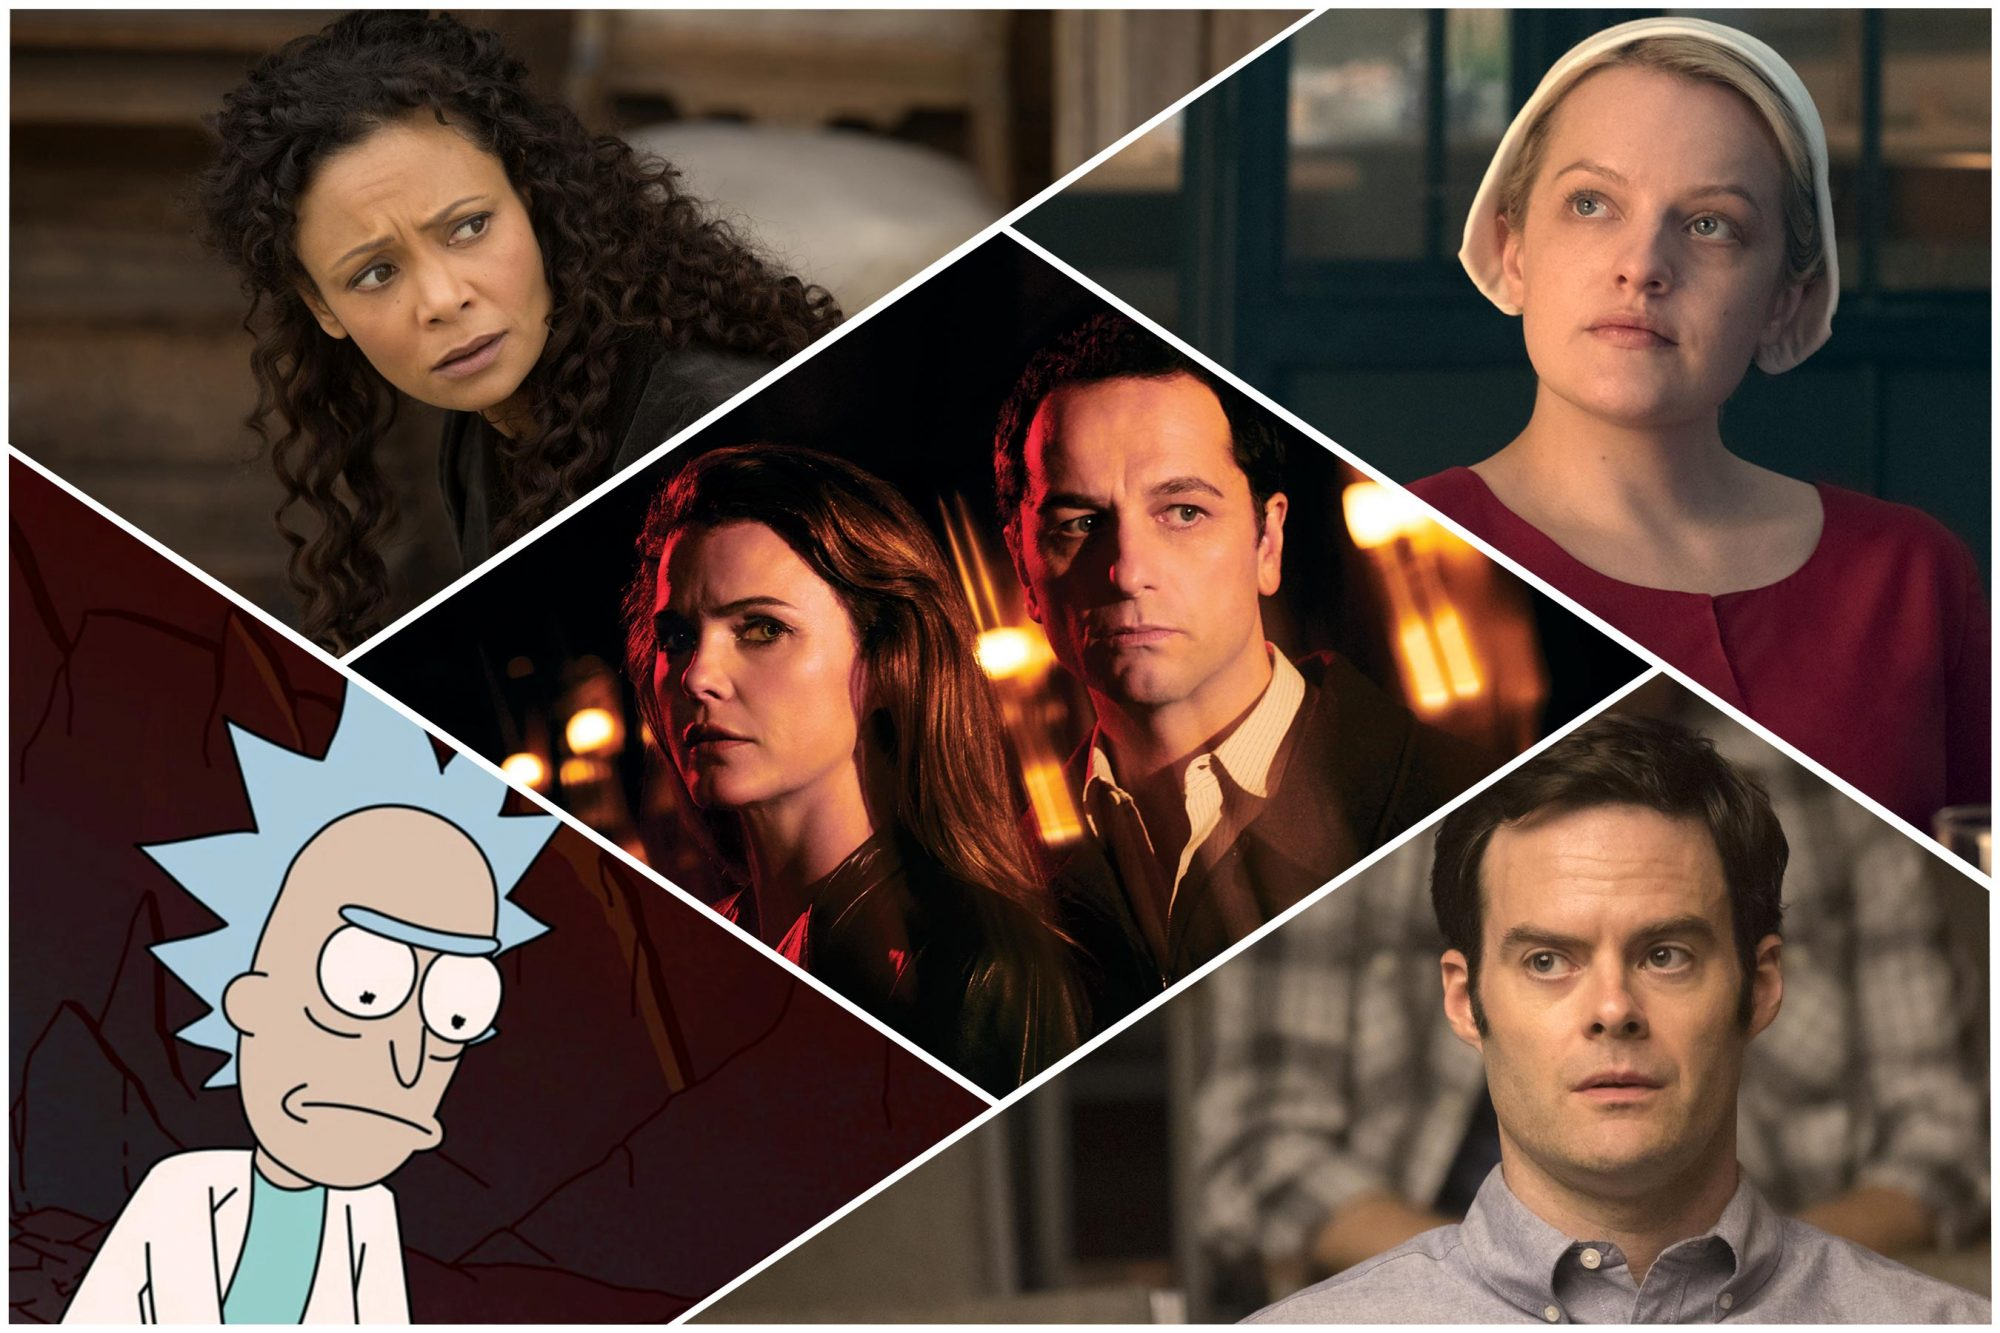 What to Watch: Here are the TV shows your favorite celebrities are binge-watching